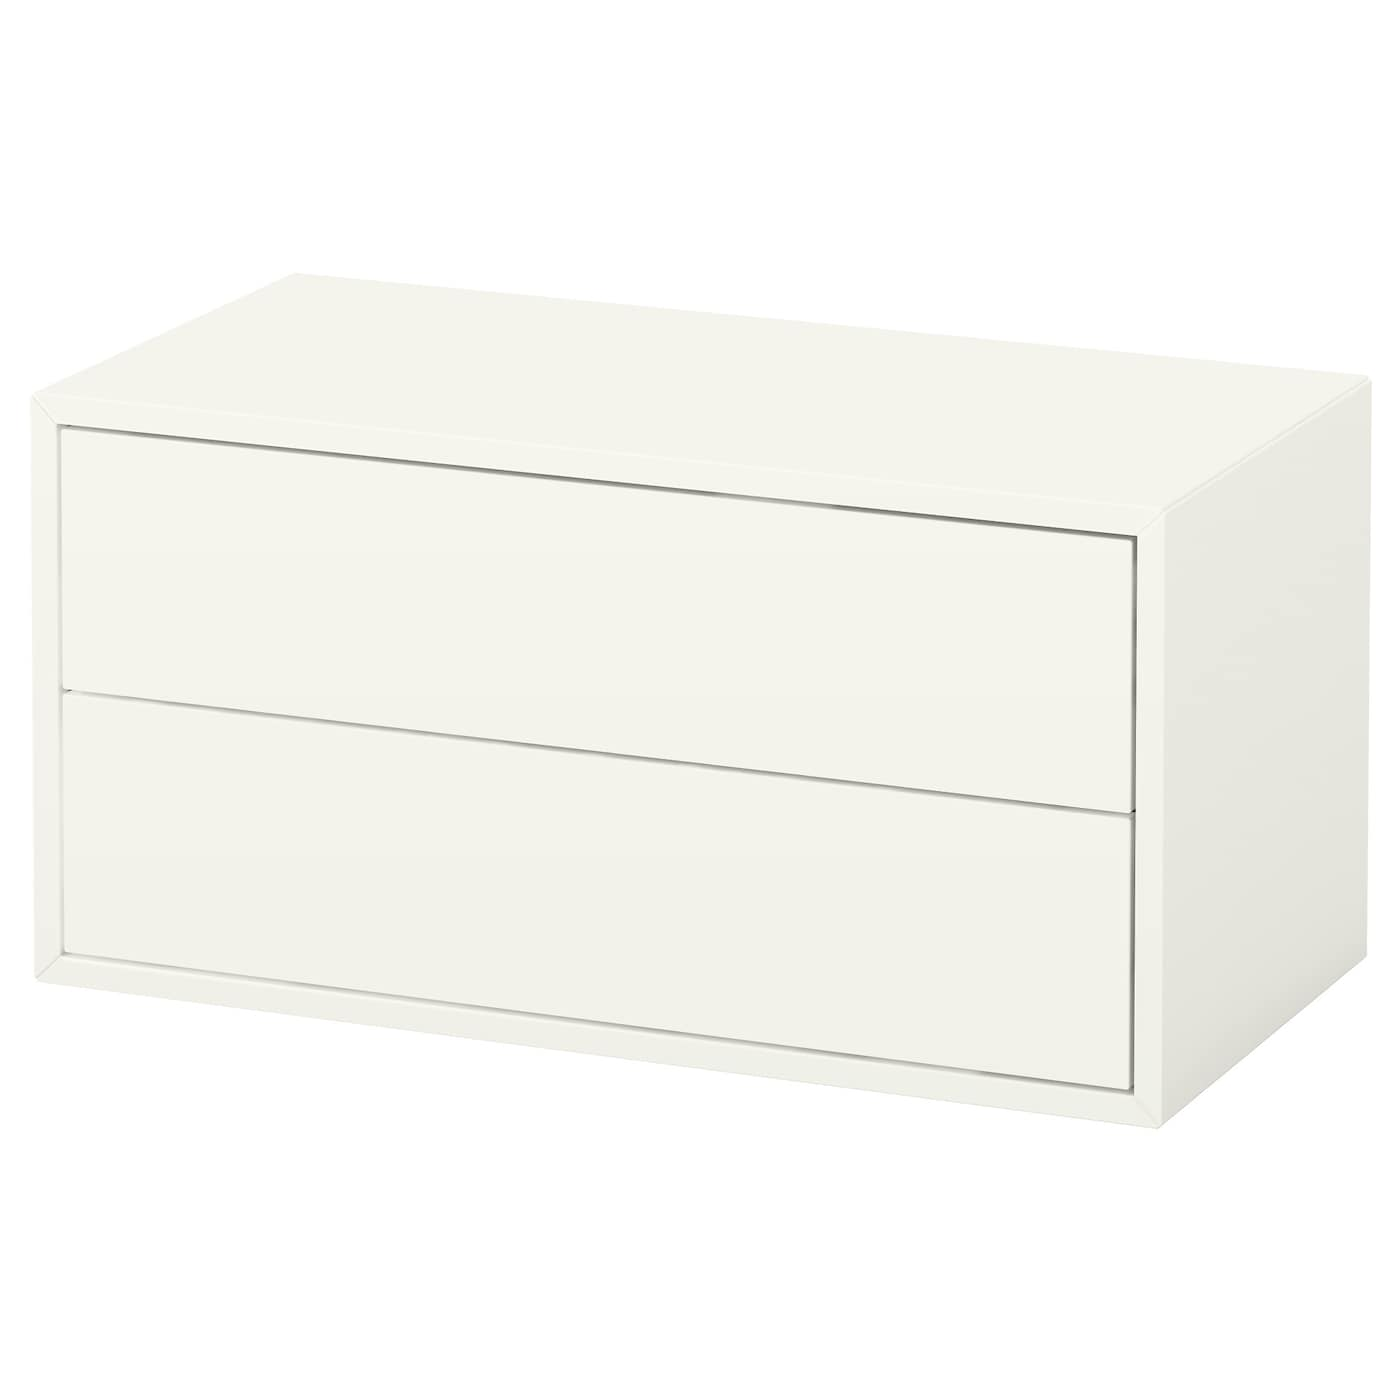 eket cabinet with 2 drawers white 70 x 35 x 35 cm ikea. Black Bedroom Furniture Sets. Home Design Ideas